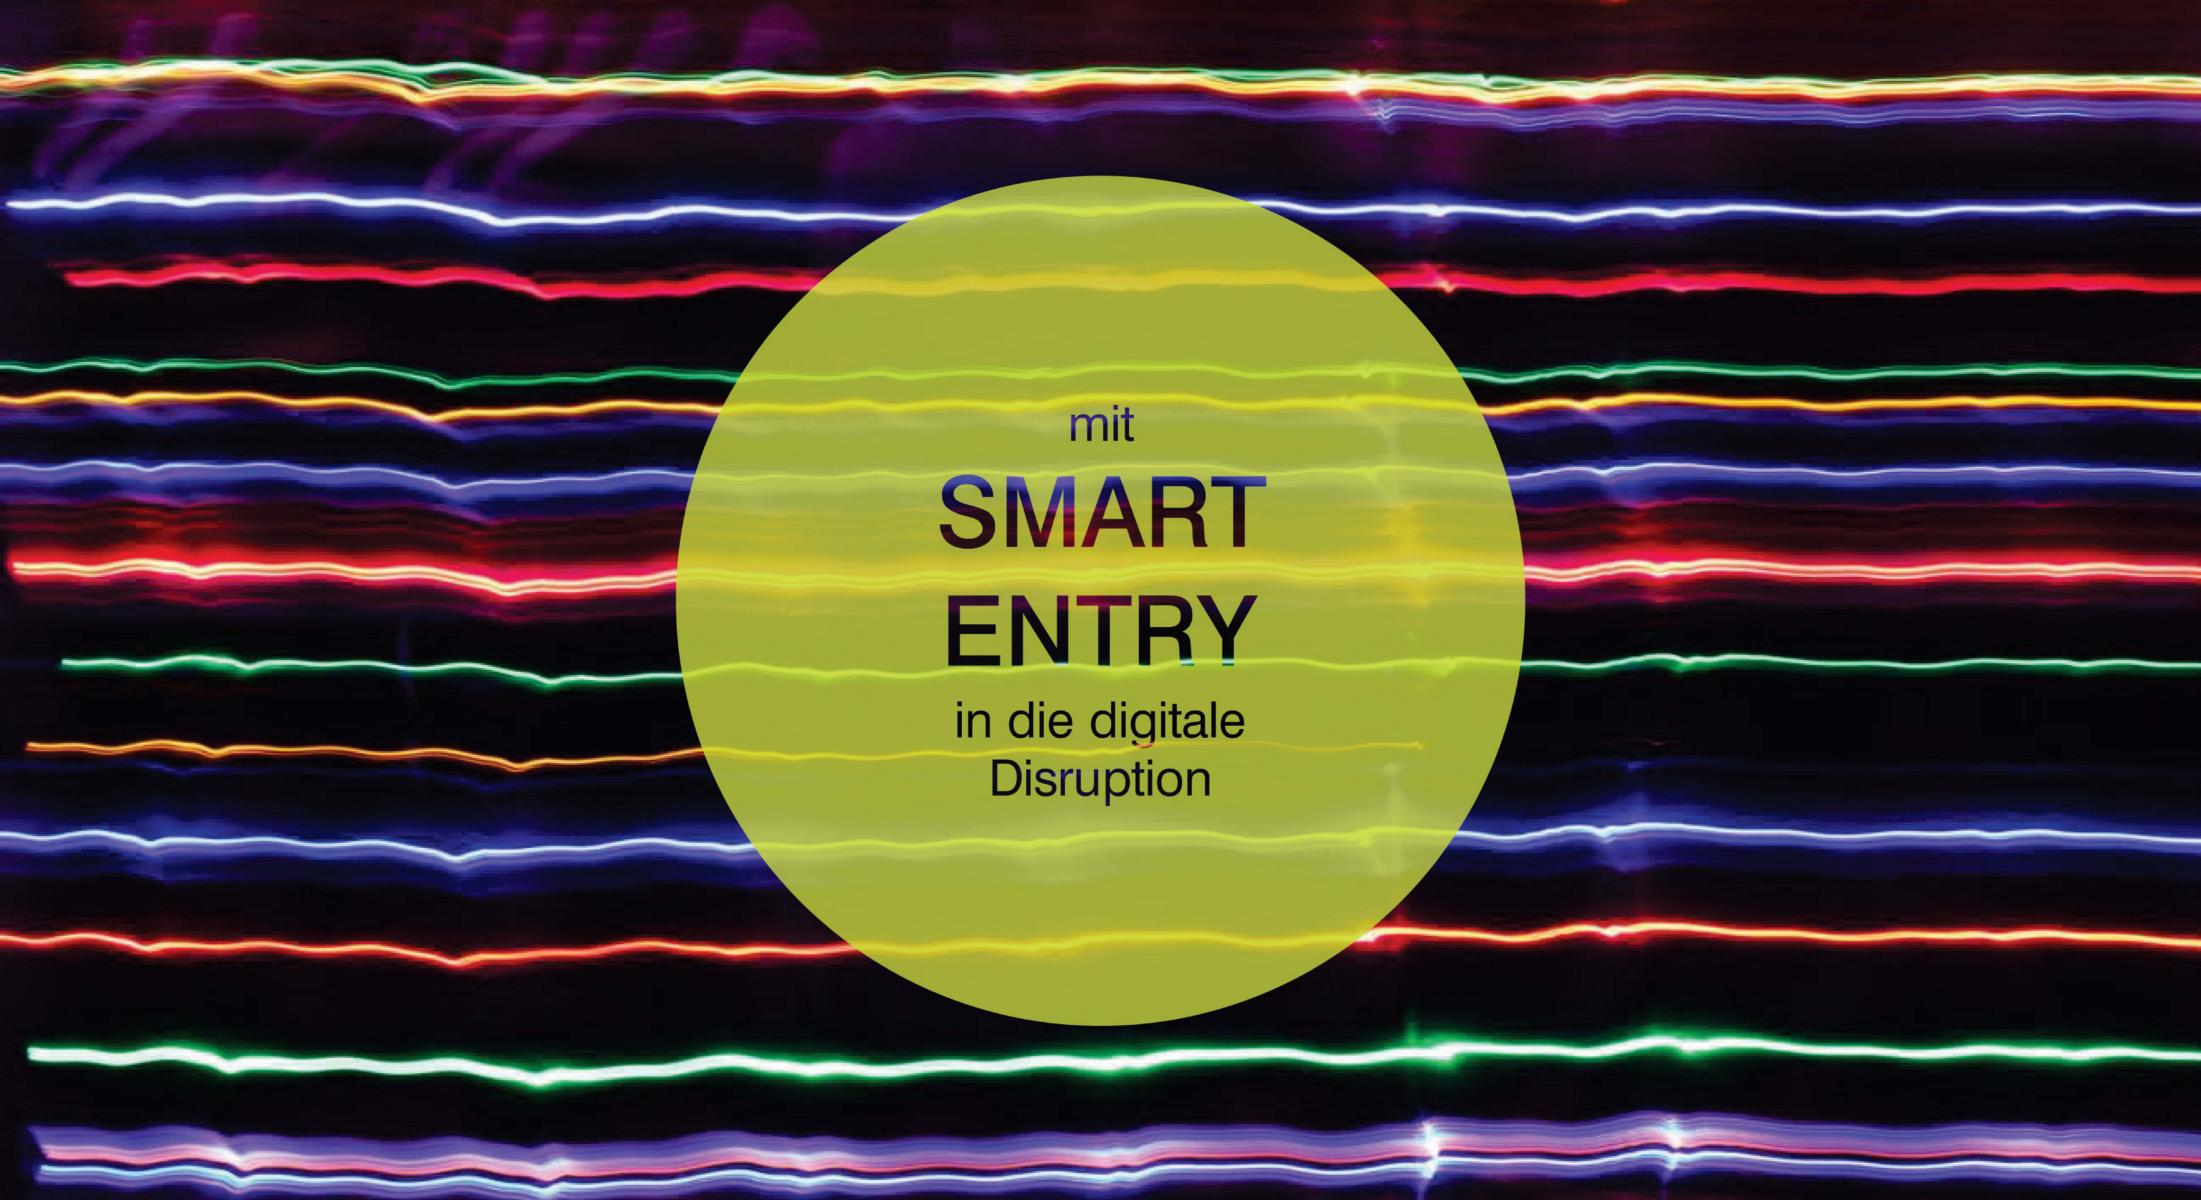 Mit SMART ENTRY in die digitale Disruption